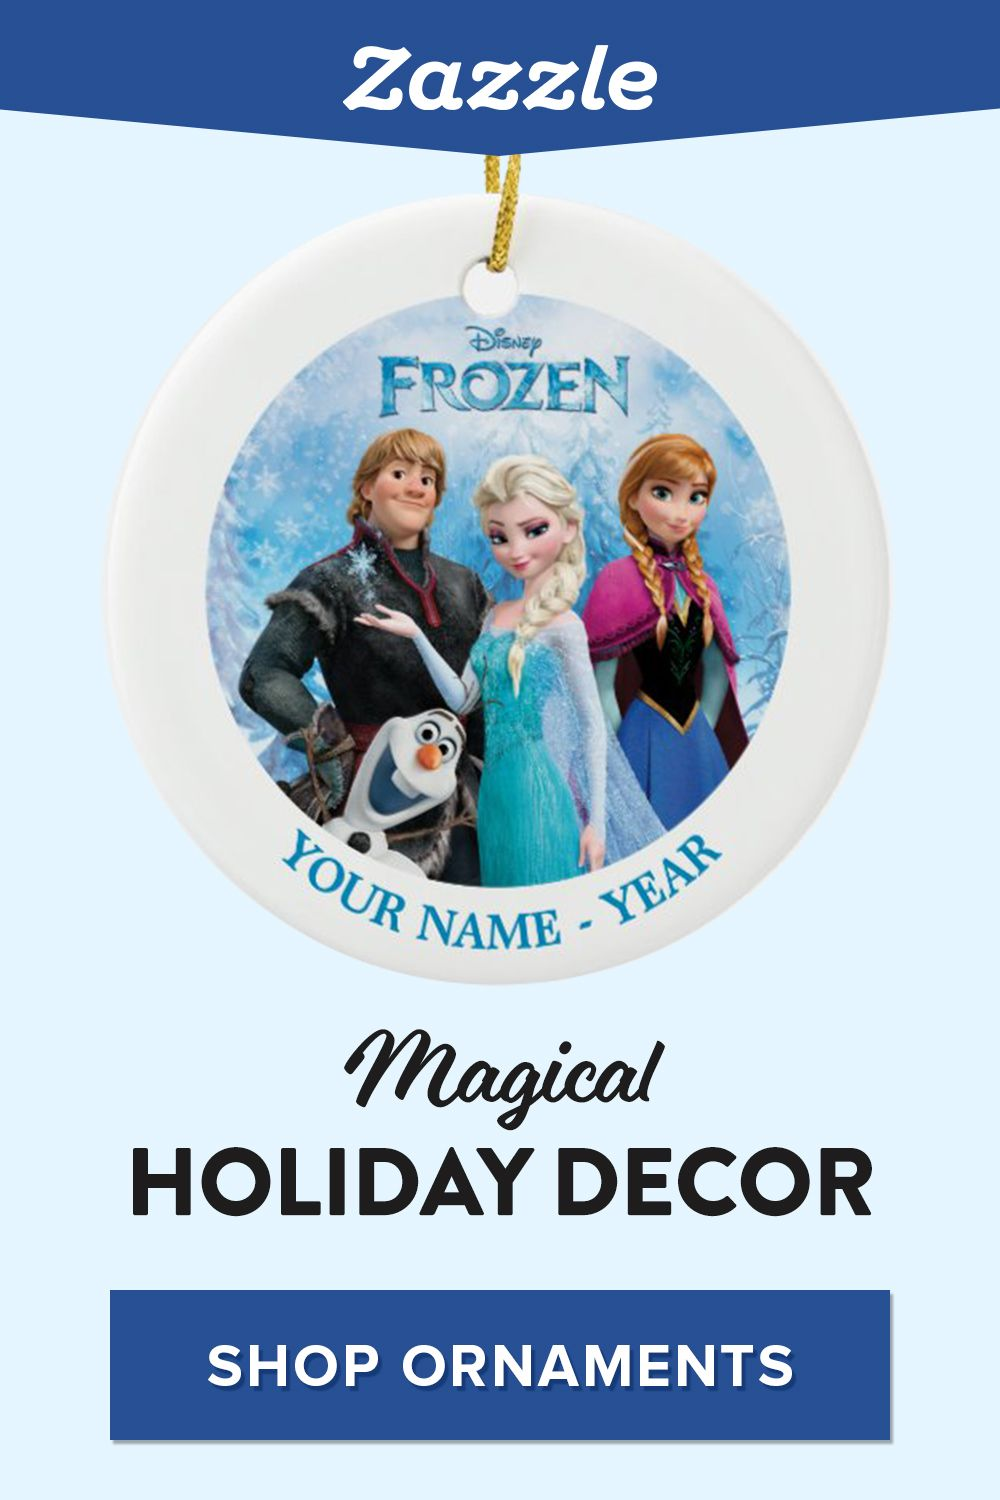 Shop custom Disney ornaments - on sale now! Create ornaments featuring Frozen characters, Mickey Mouse, Disney Princesses and more. Browse our Disney collection for custom gifts, stockings, cards, pillows, blankets and more.